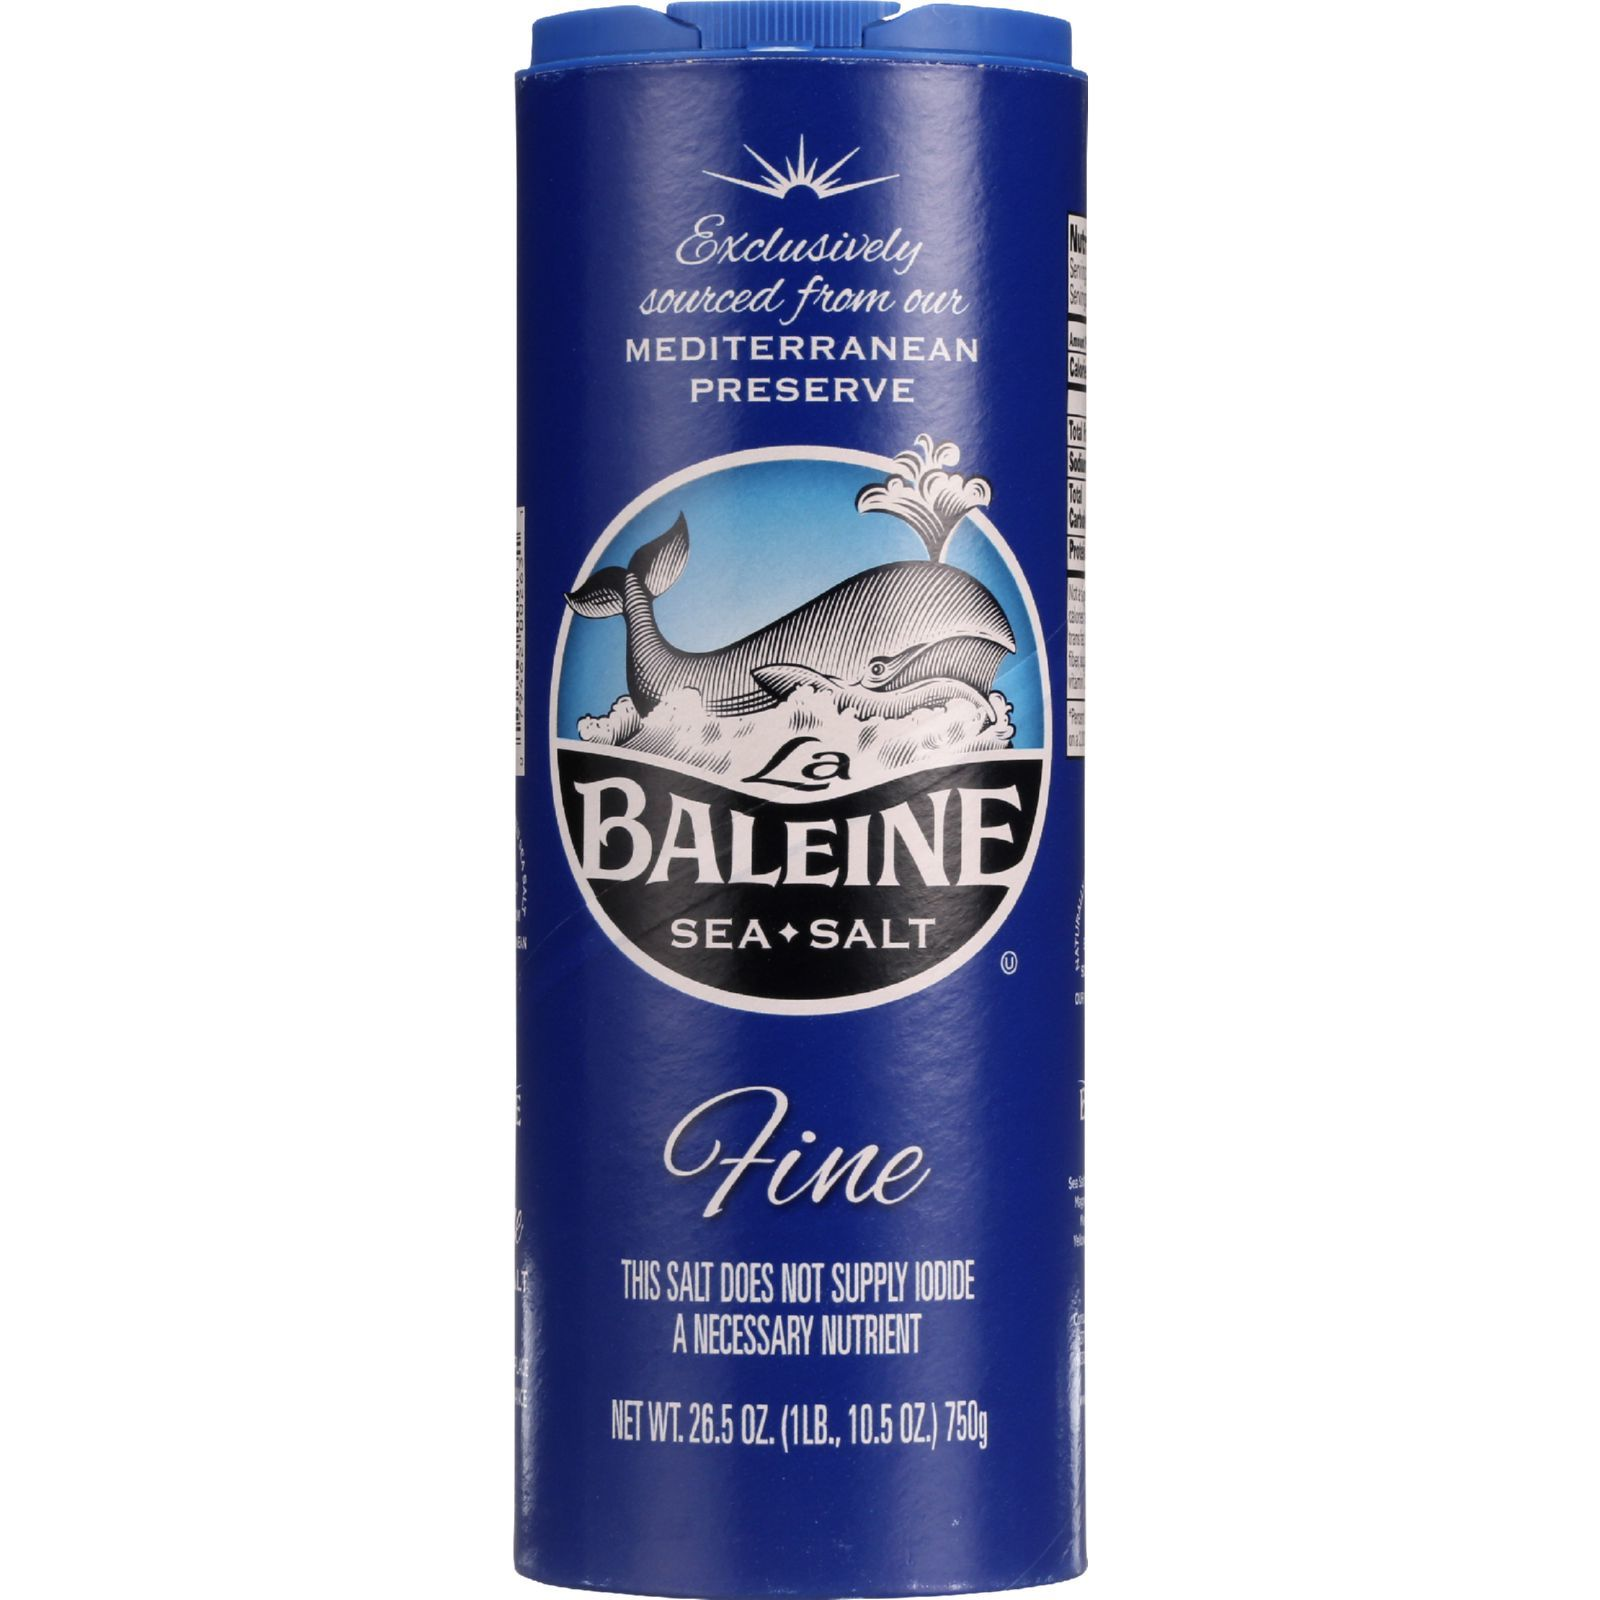 La Baleine Sea Salt Sea Salt - Fine - 26.5 oz - case of 12